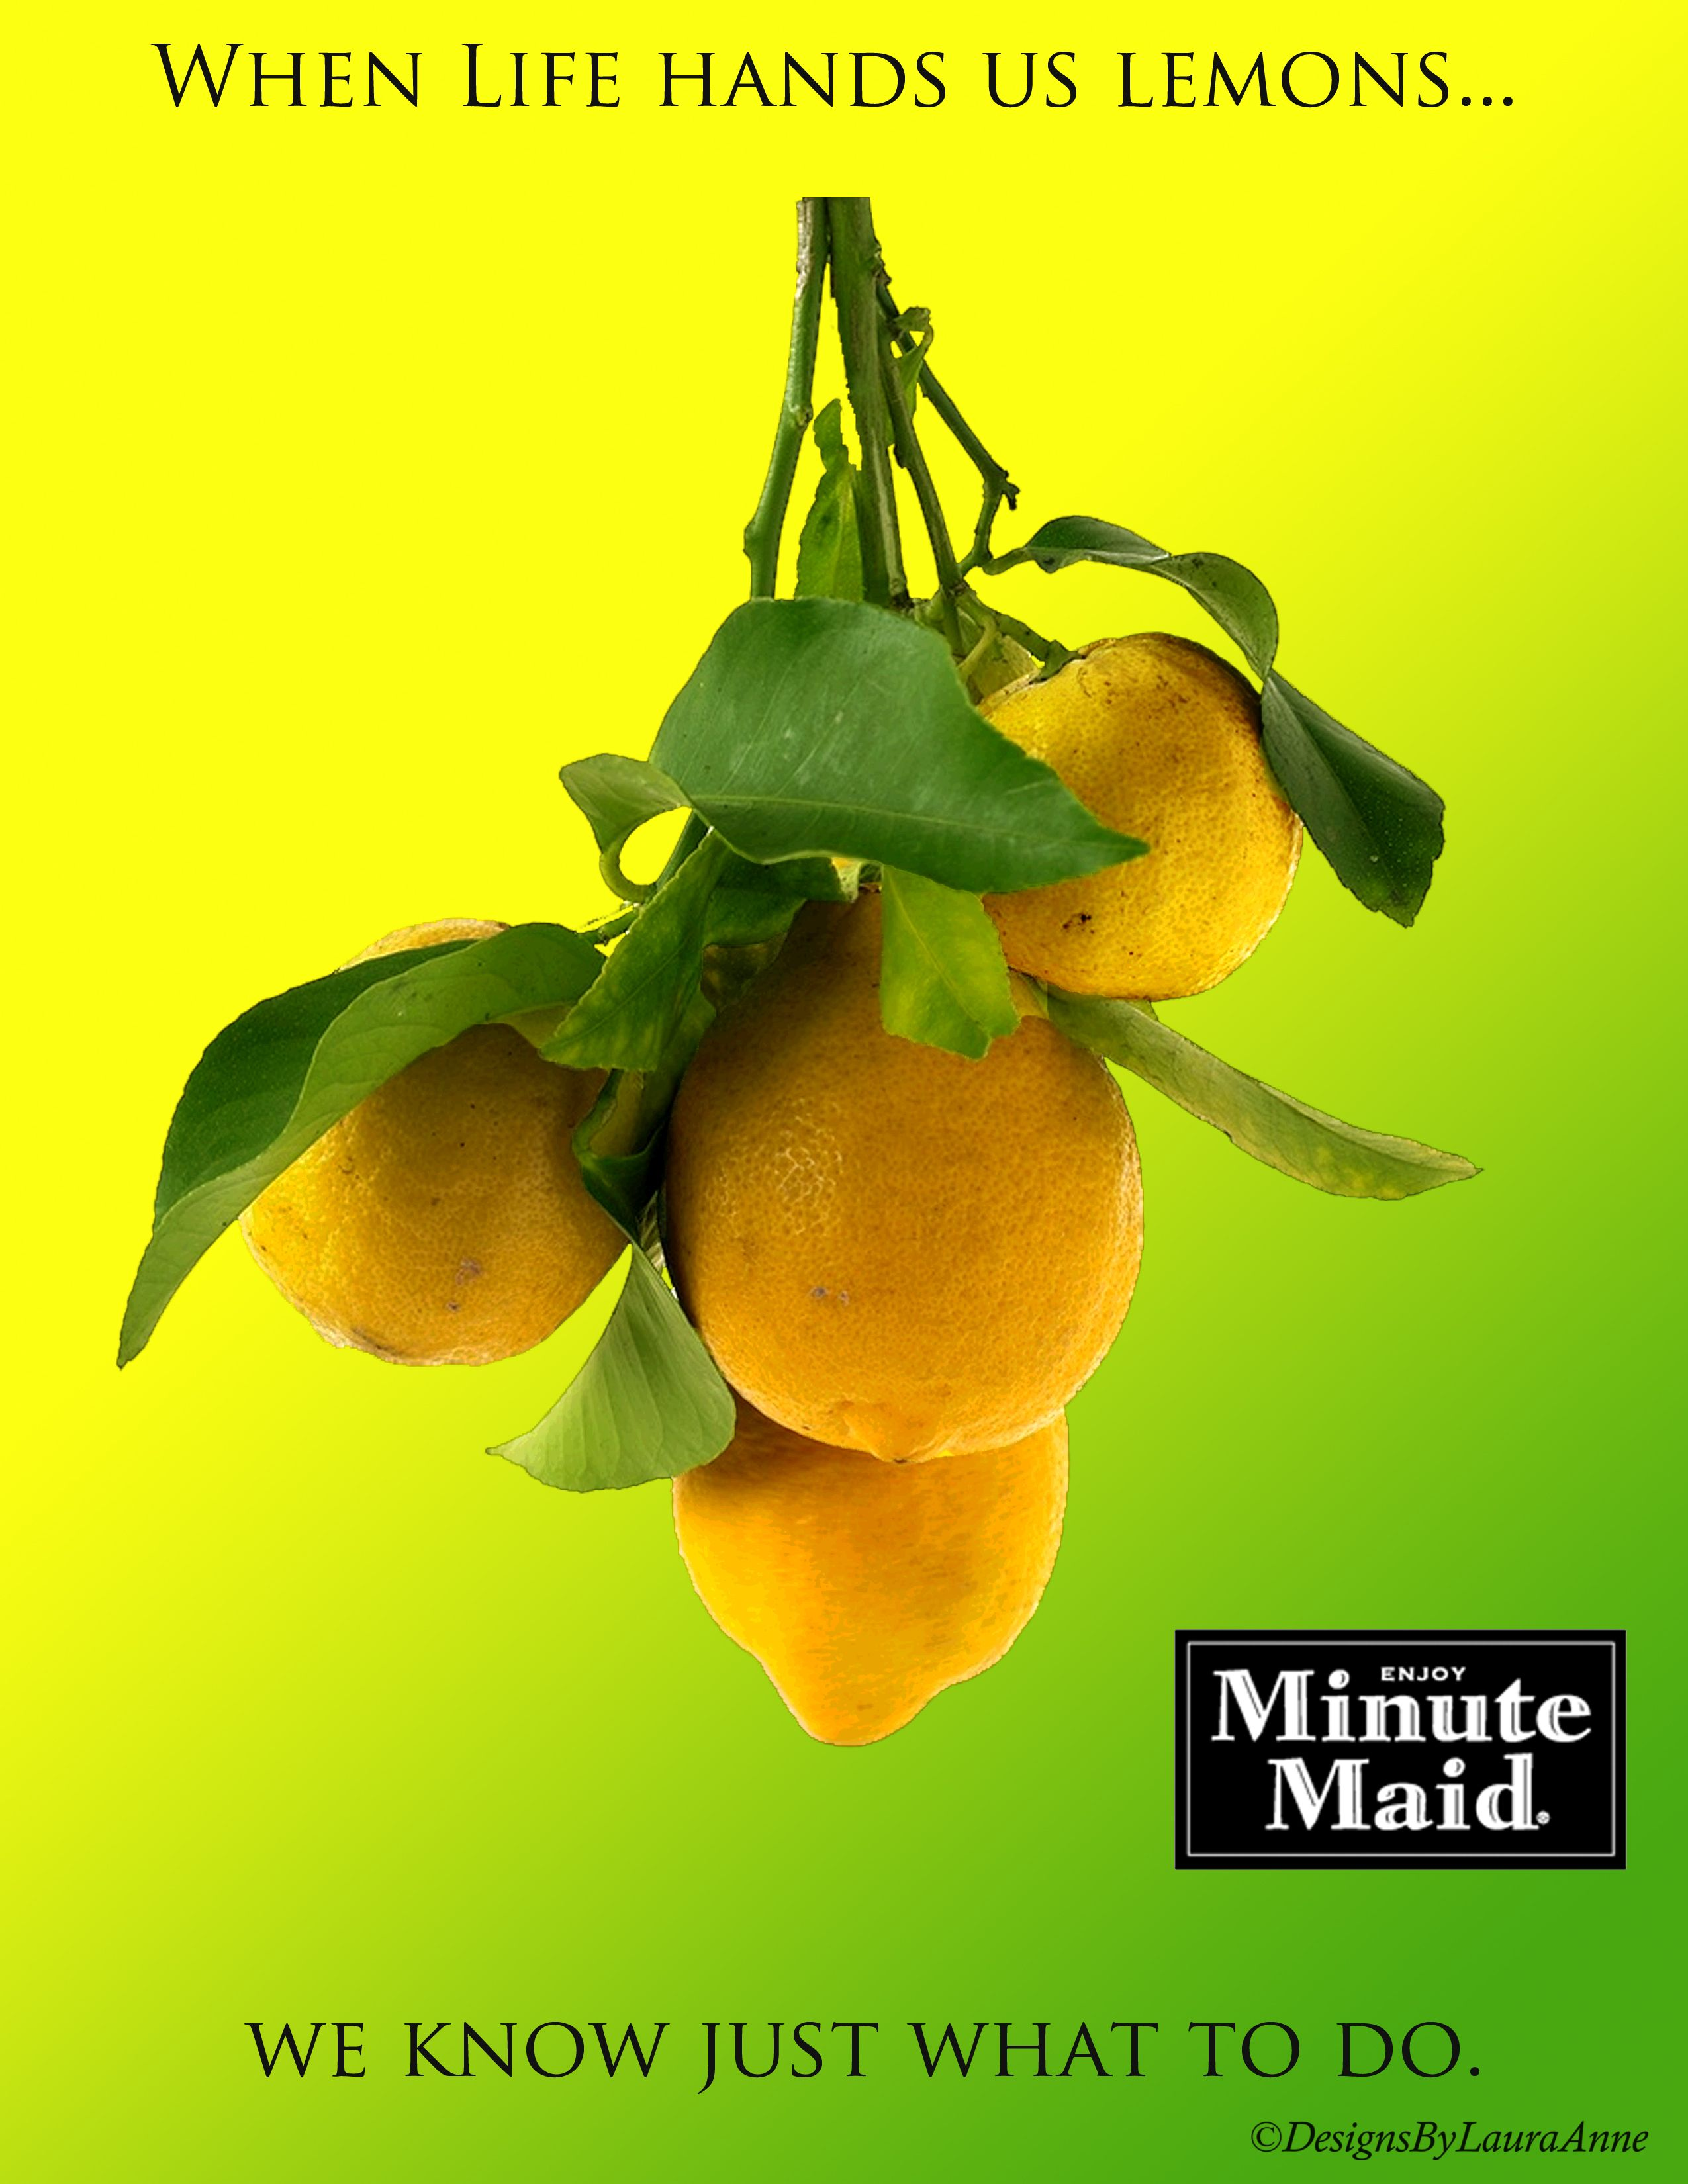 Piece Ad Portfolio Piece 4 Minute Maid Ad Created For Elements Of